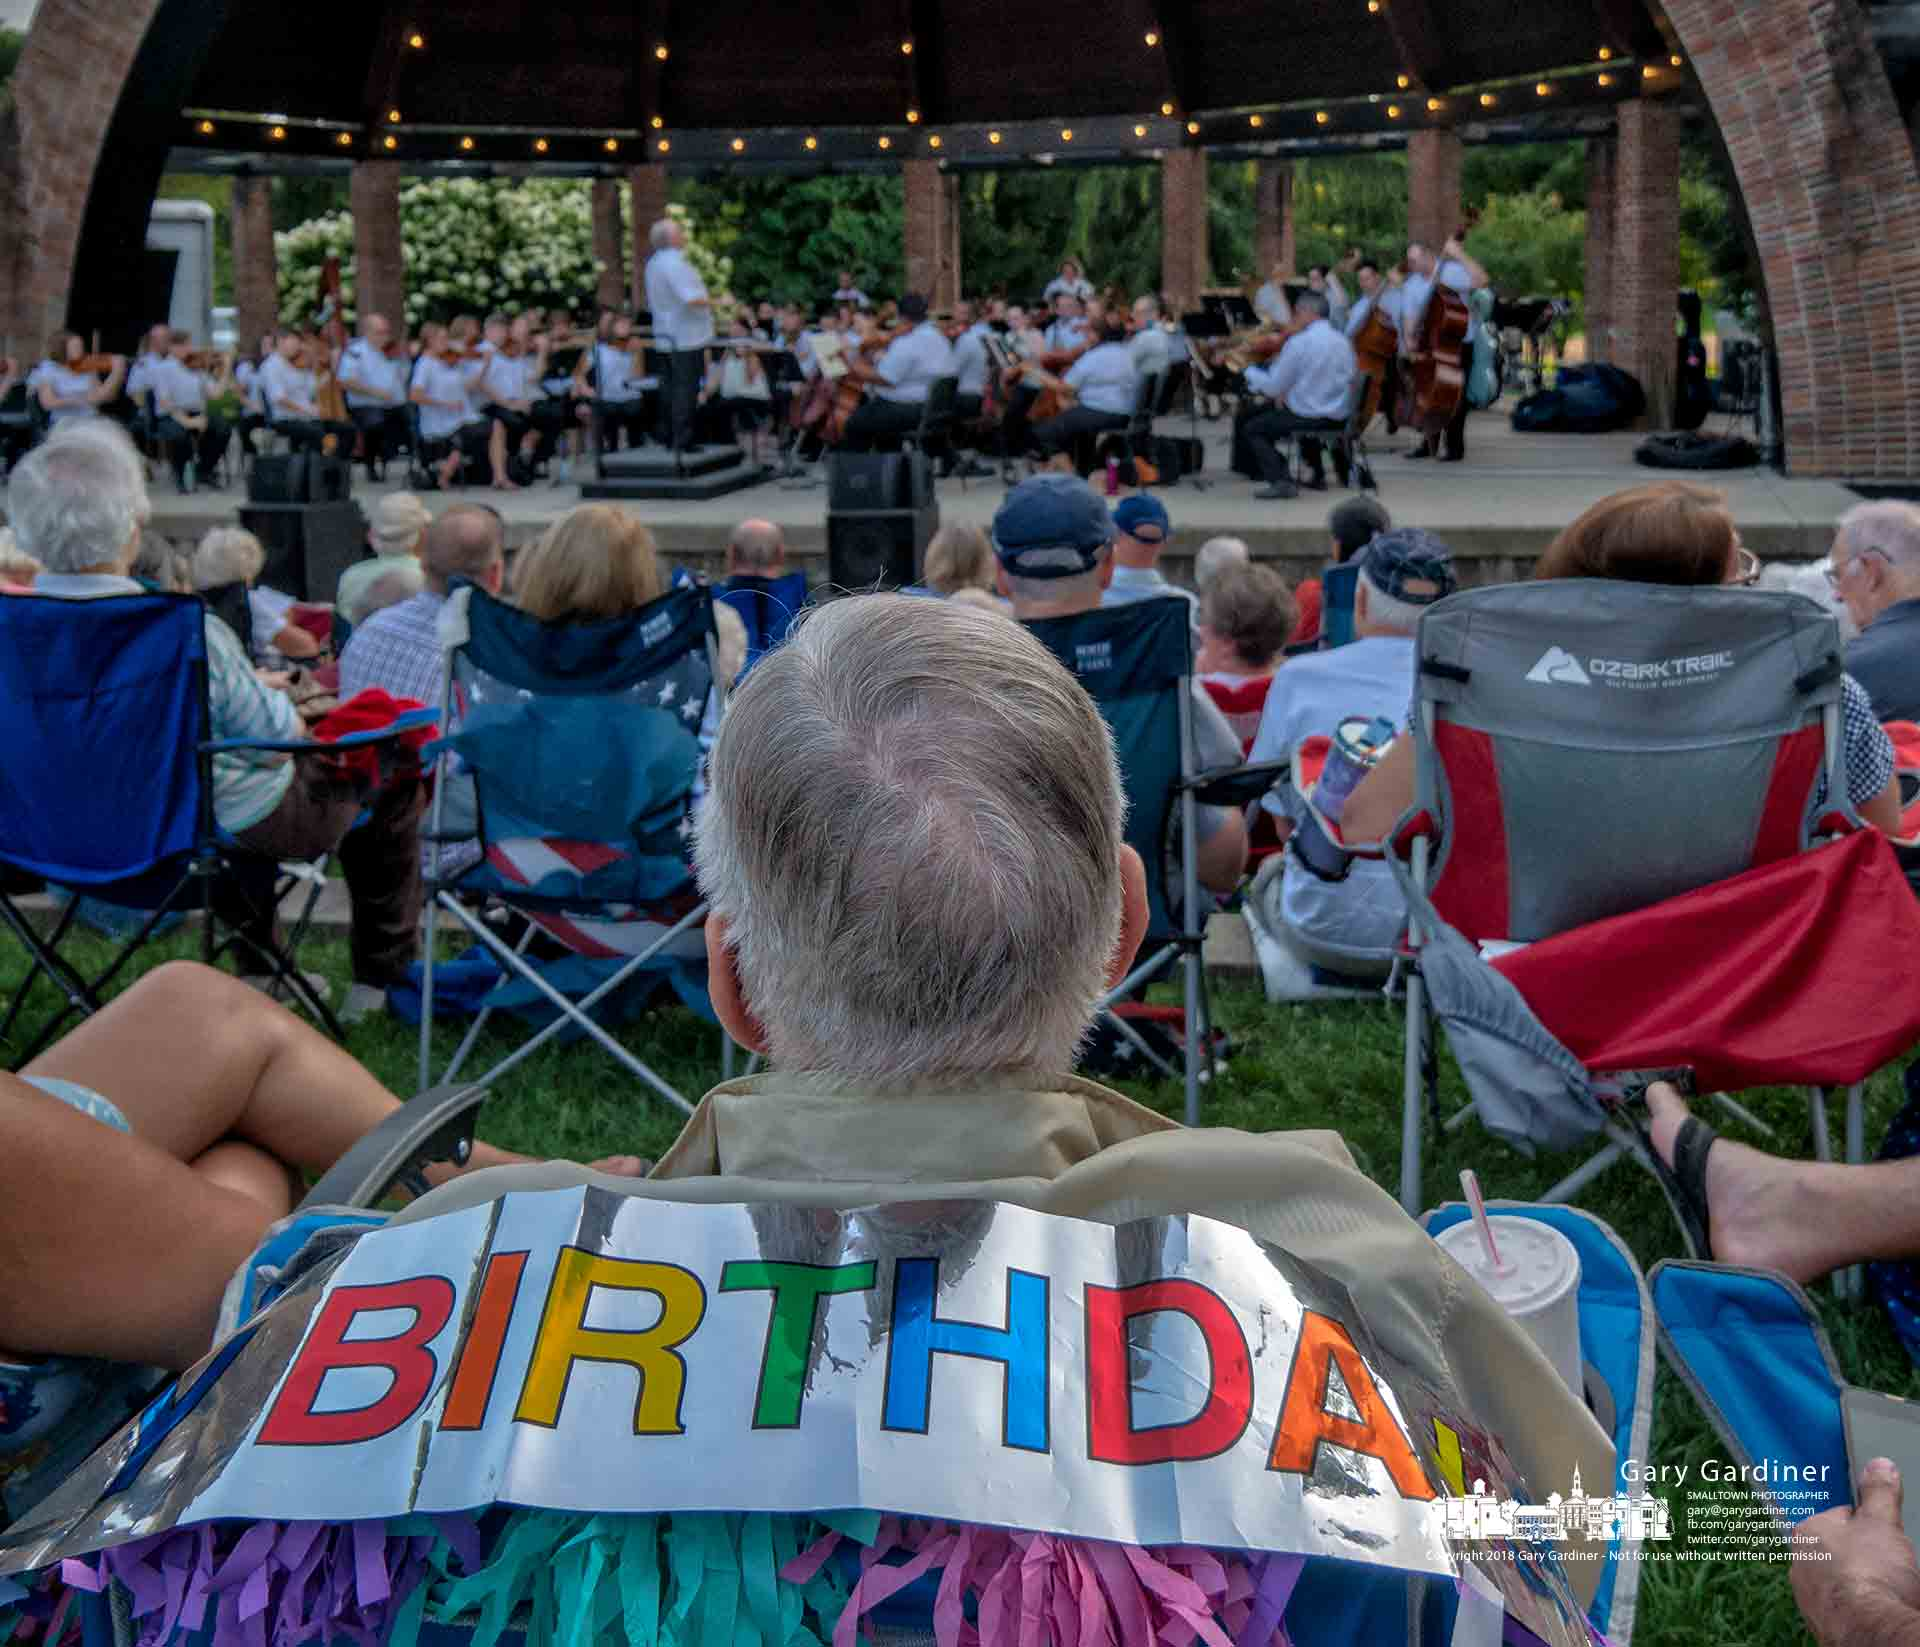 A music lover wearing a banner celebrating his birthday listens as the Westerville Symphony performs a concert honoring the 100th anniversary of the birth of composer Leonard Bernstein at the Alum Creek Amphitheater. My Final Photo for Aug. 19, 2018.